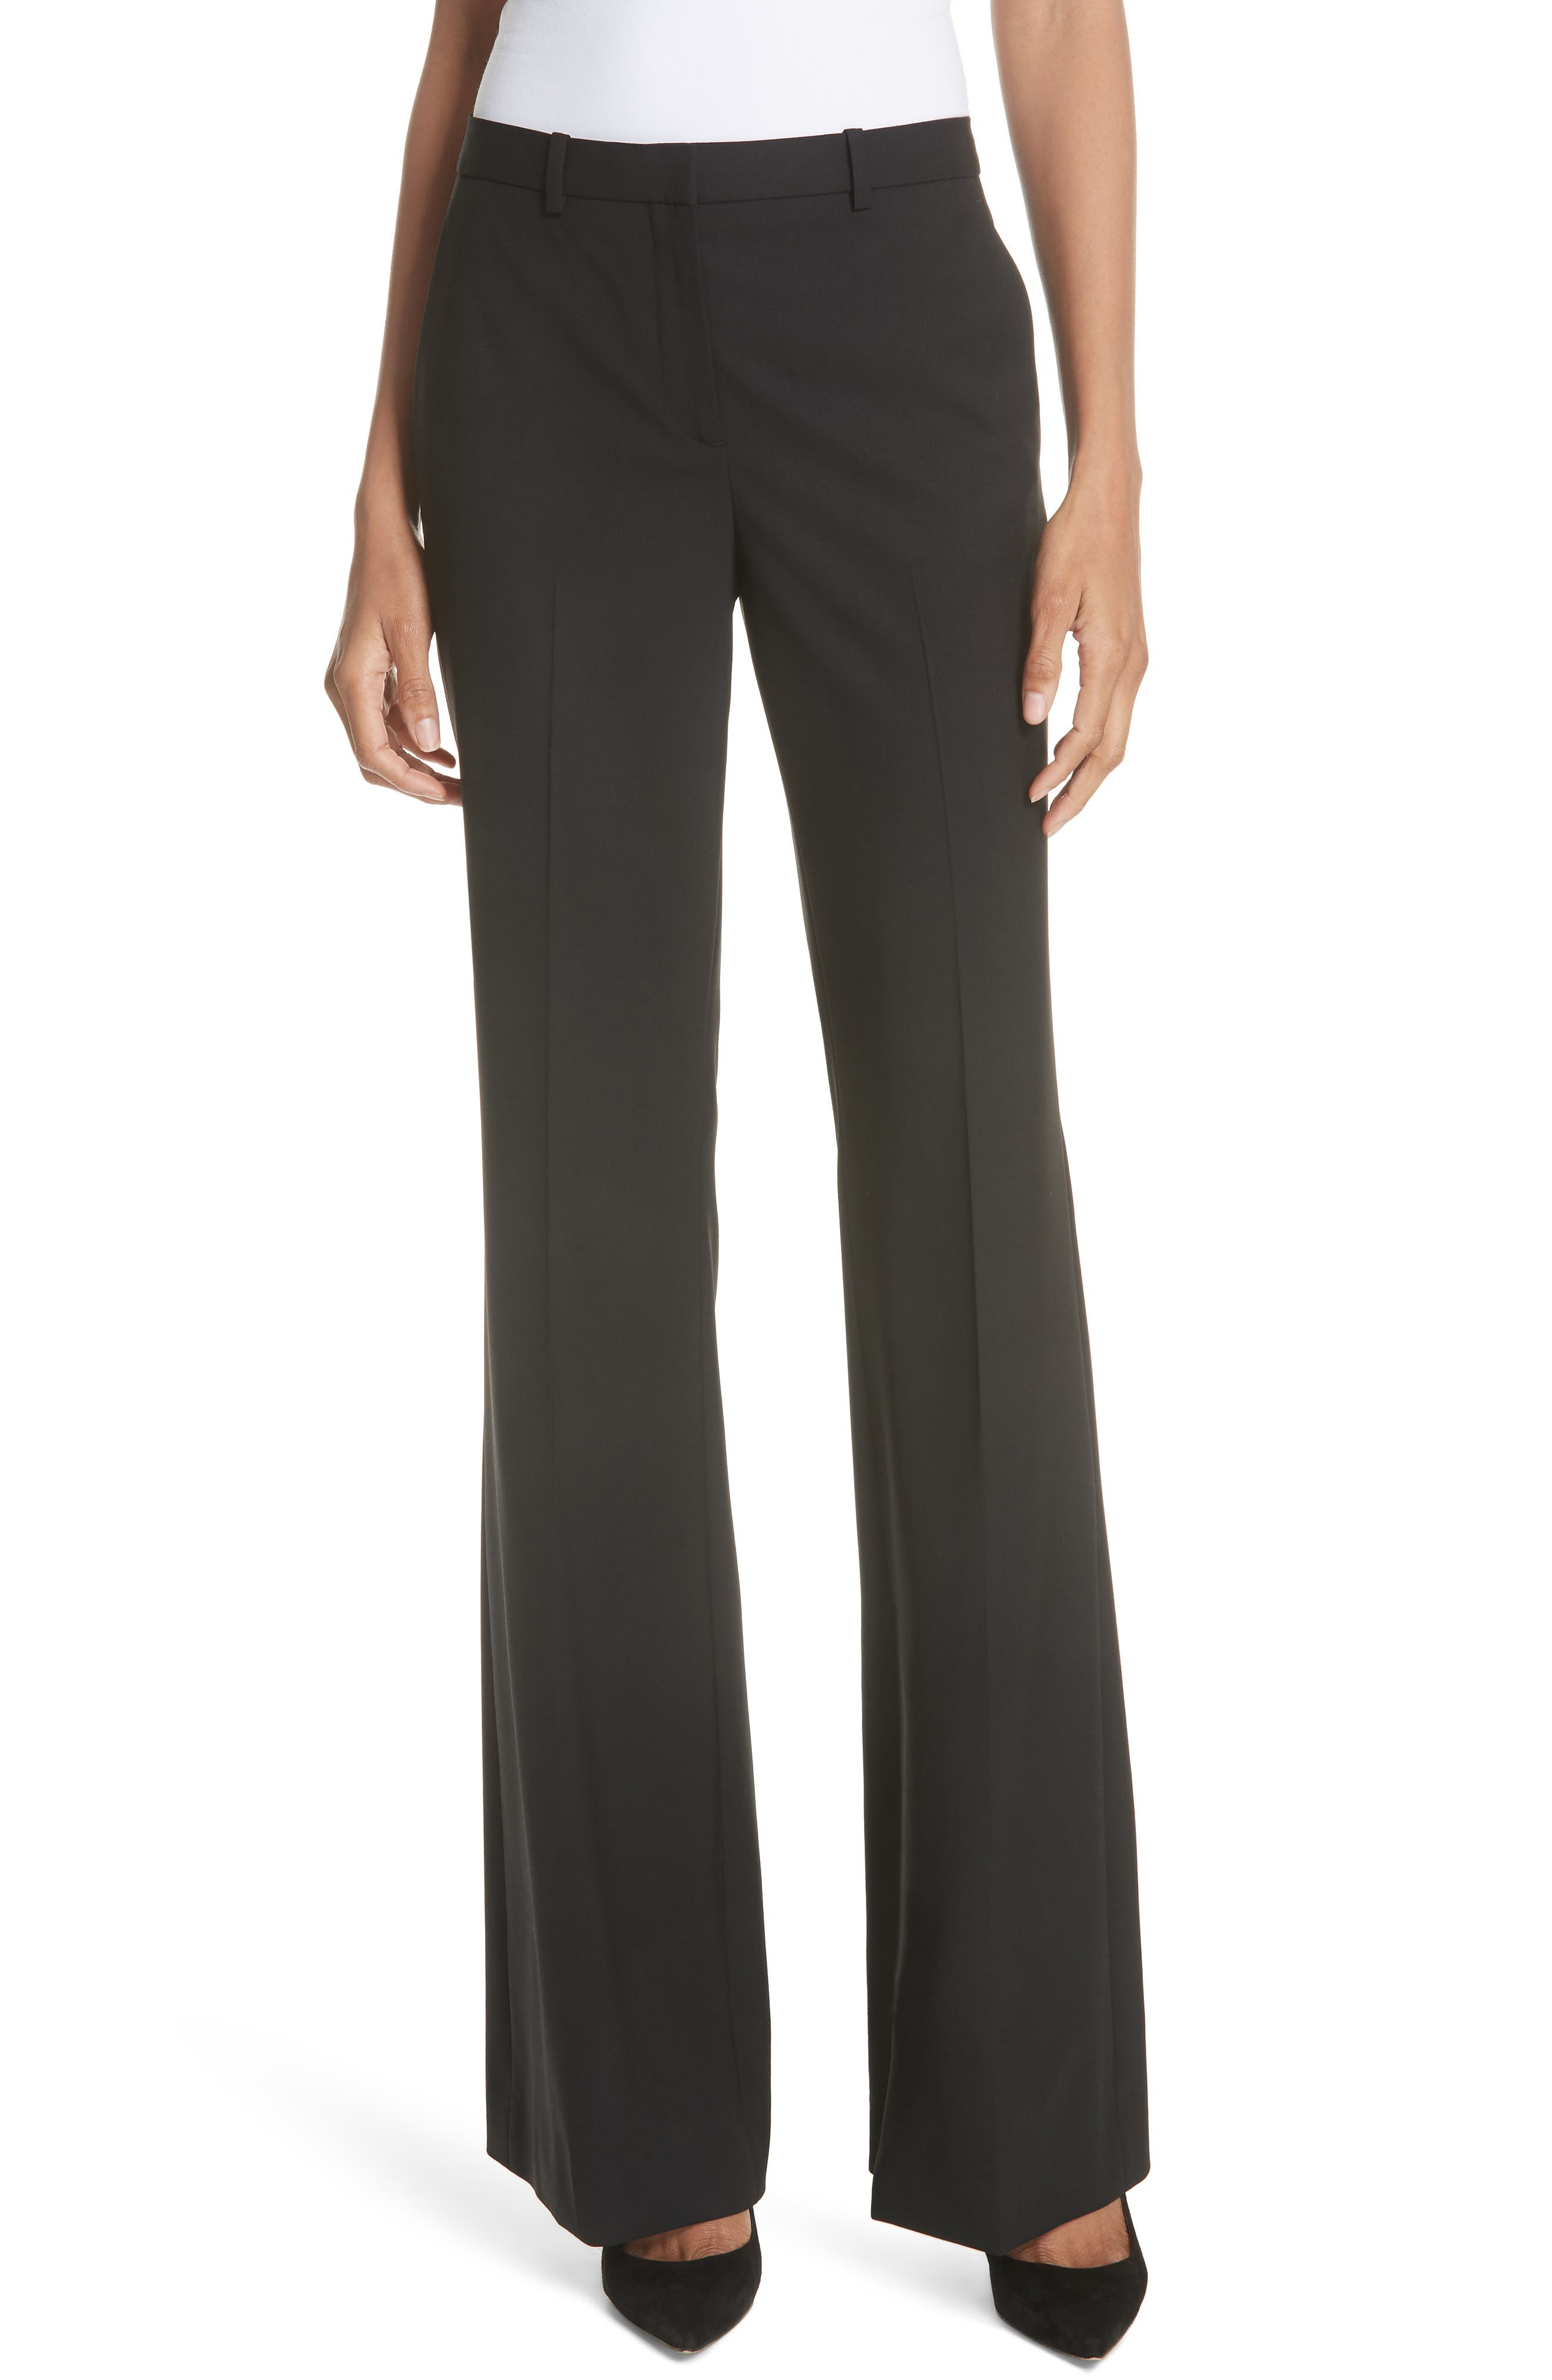 THEORY Demitria 2 Stretch Wool Suit Pants, Main, color, BLACK